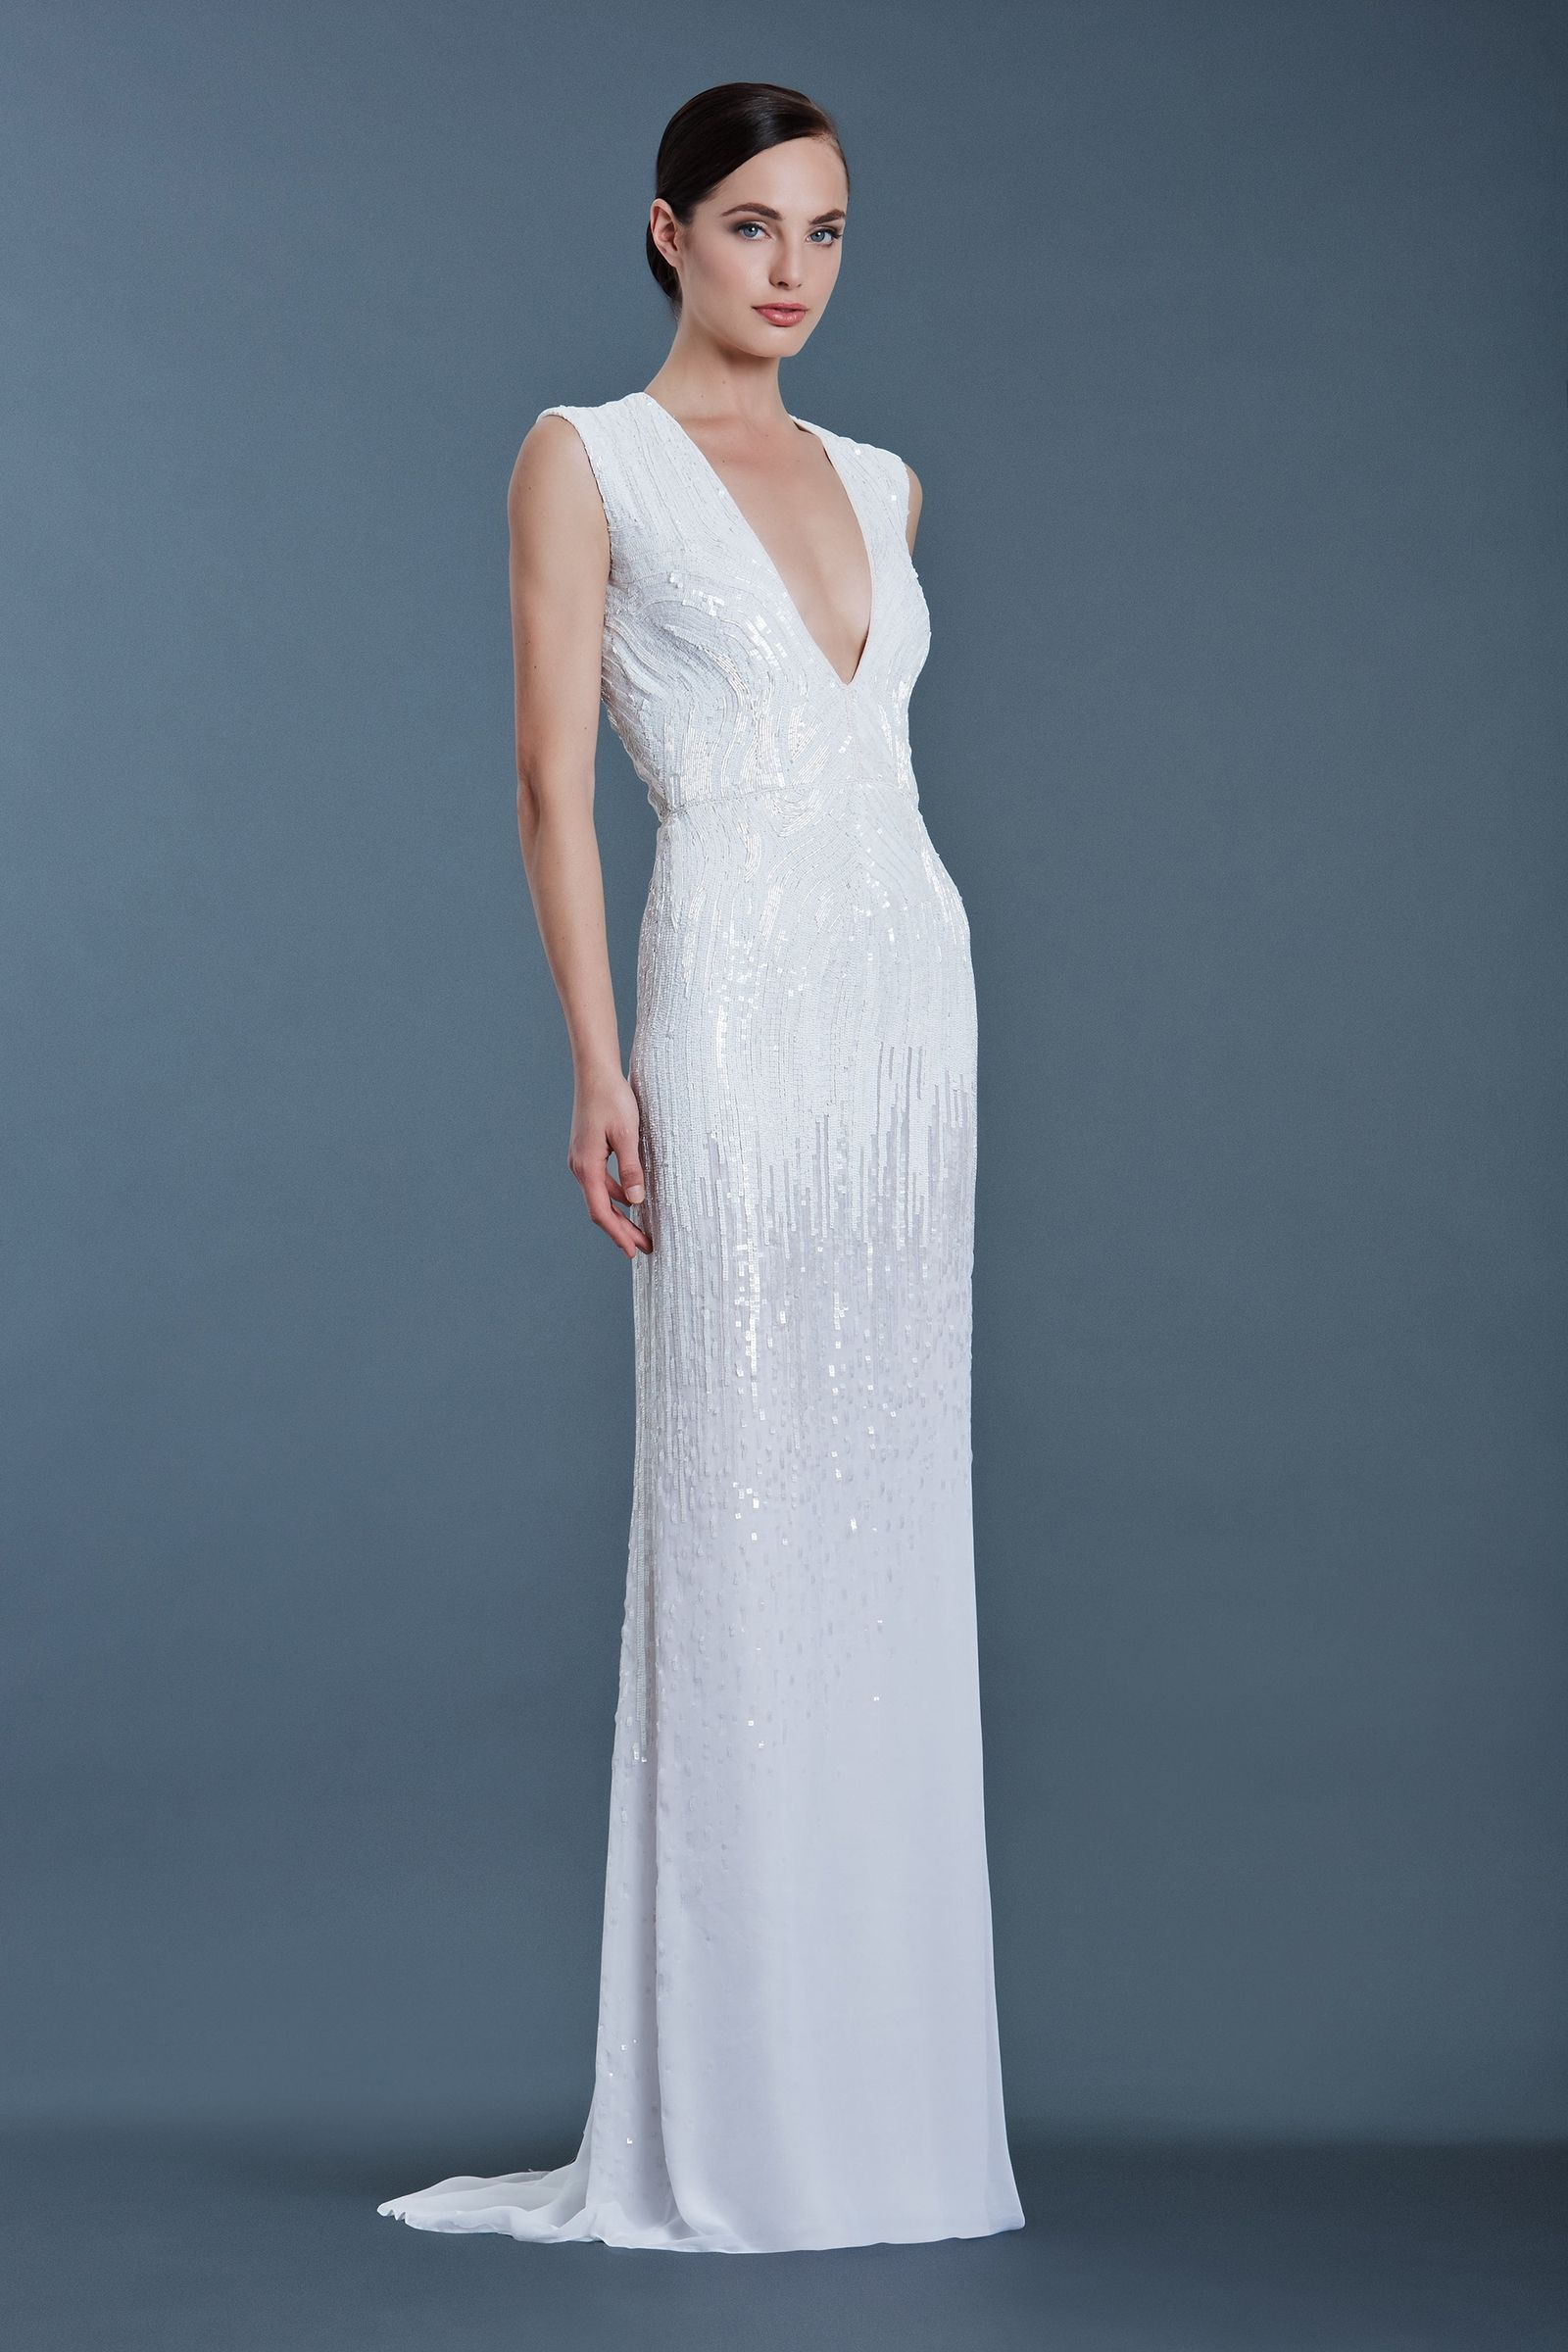 Best in bridal vera wang fall white gowns vintage weddings